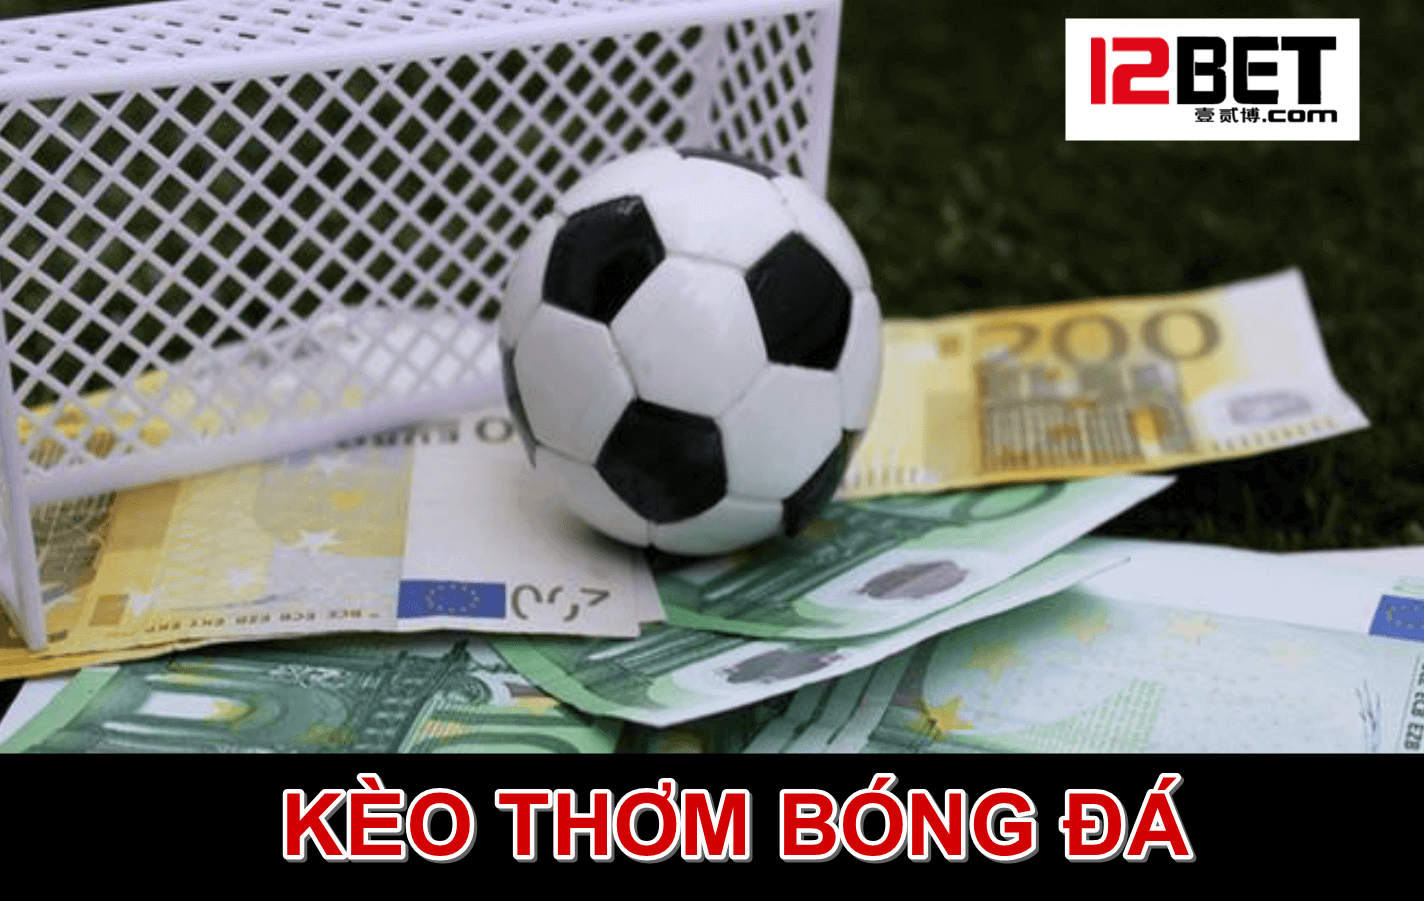 What is football betting?